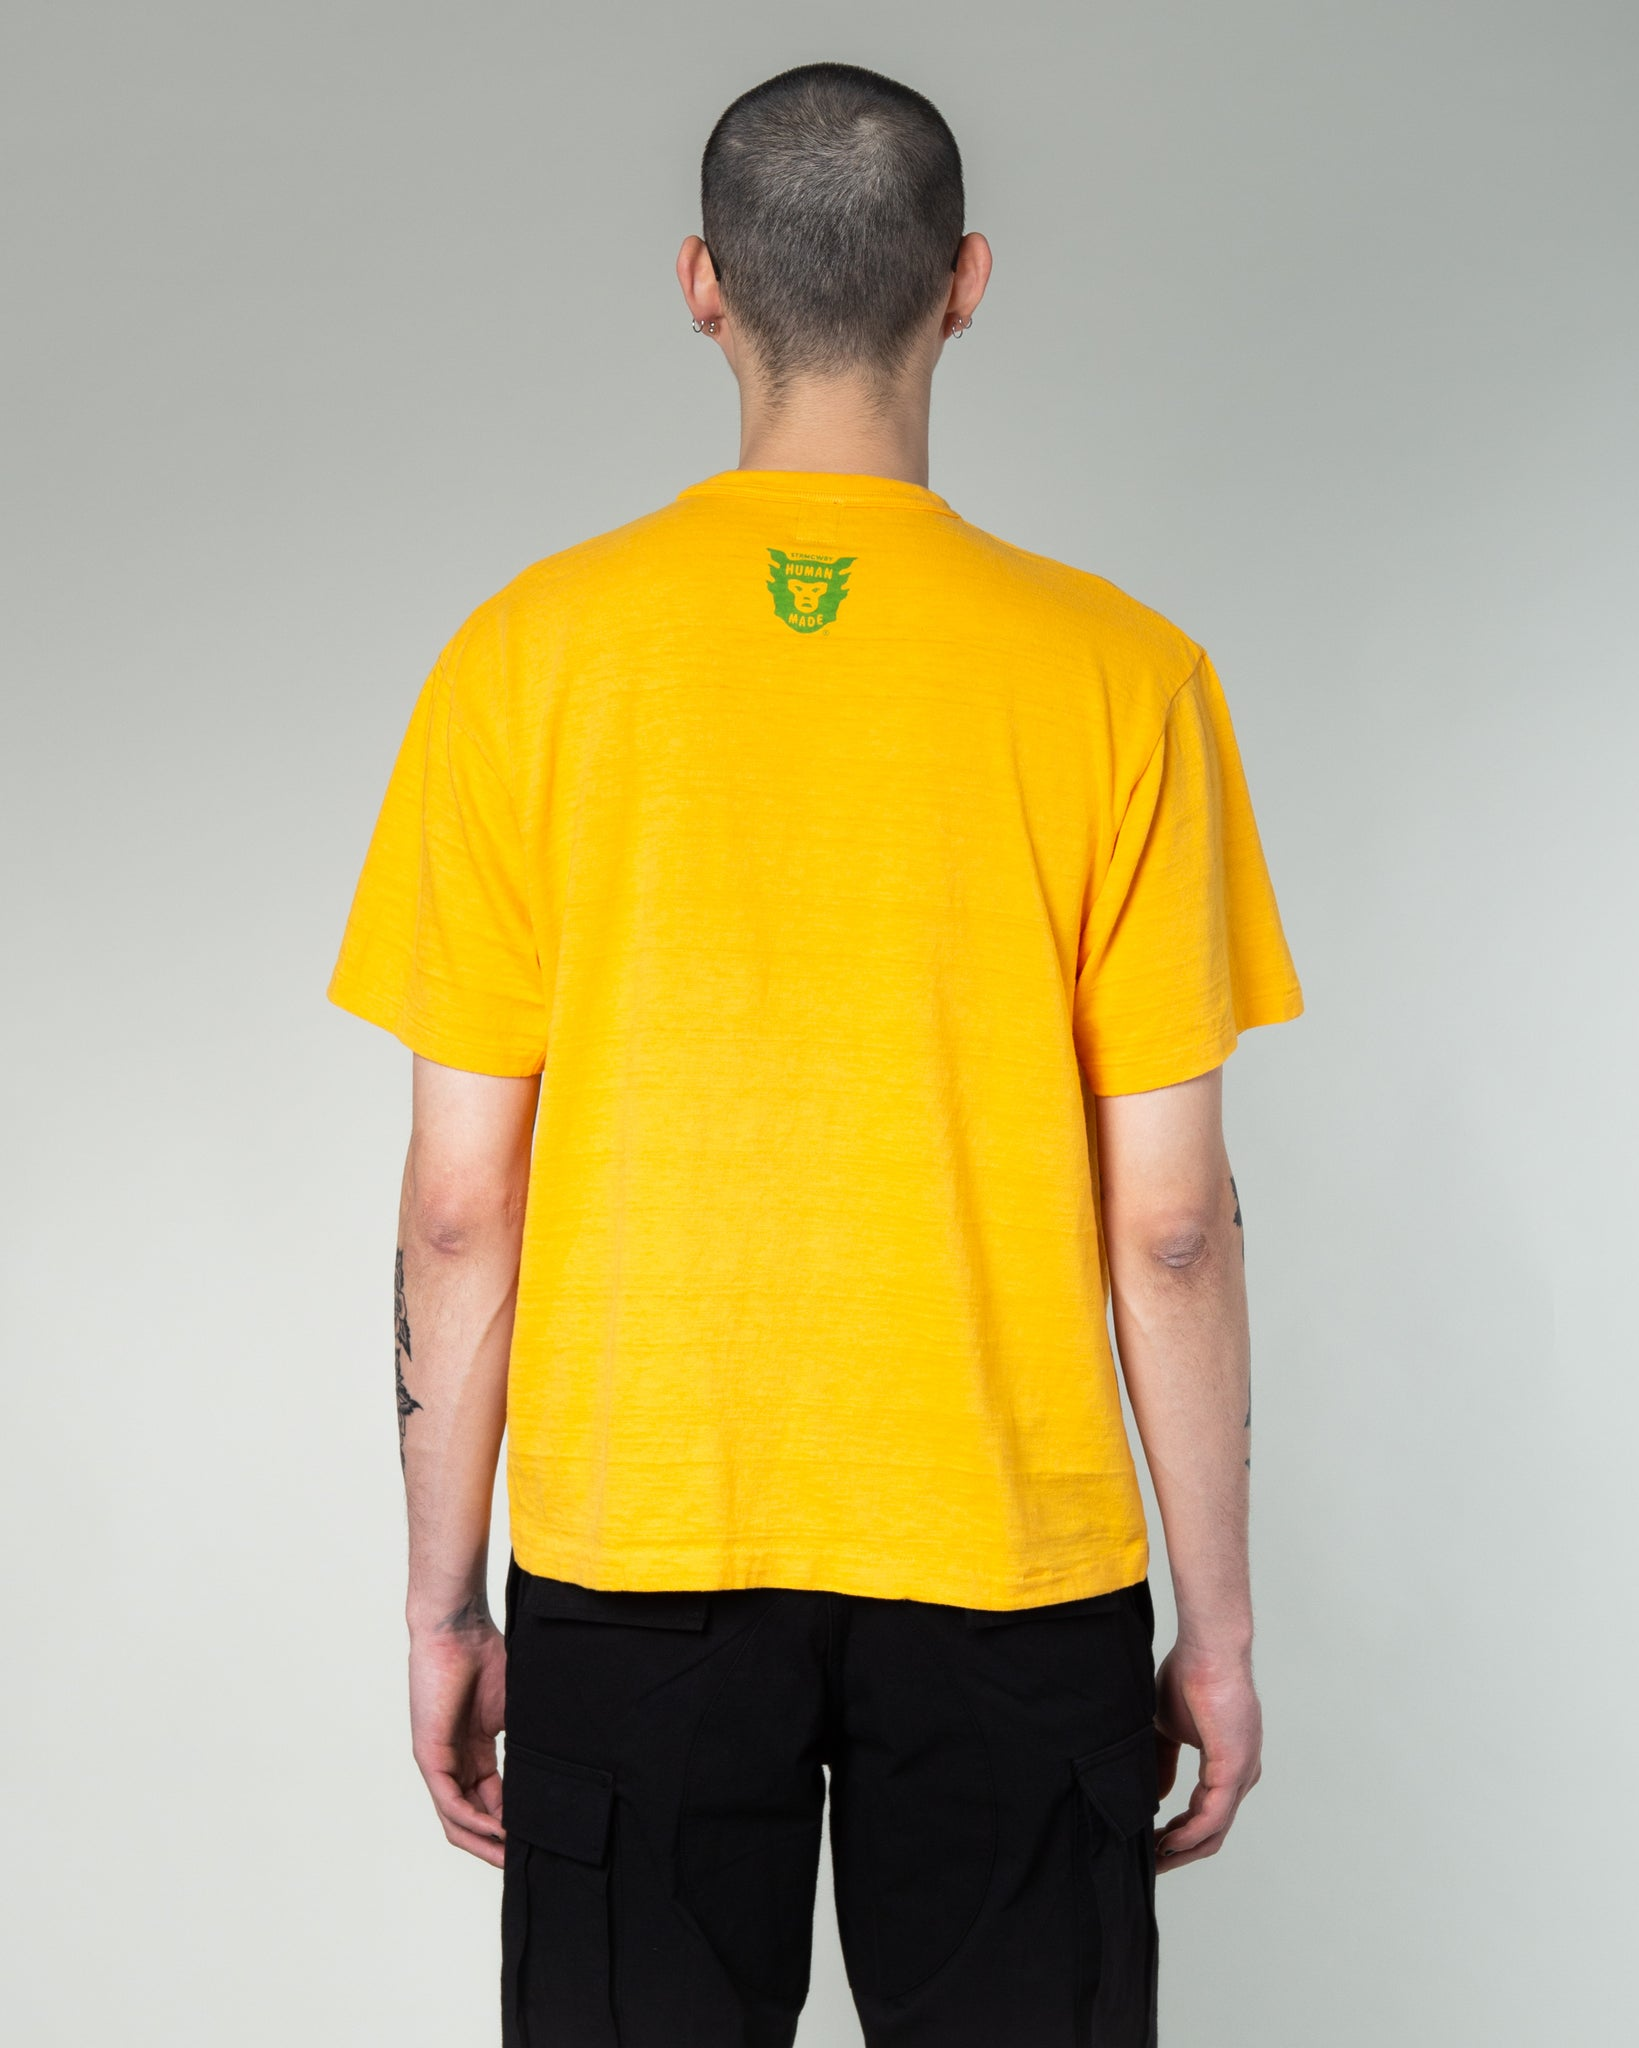 Color T-Shirt #2 Yellow